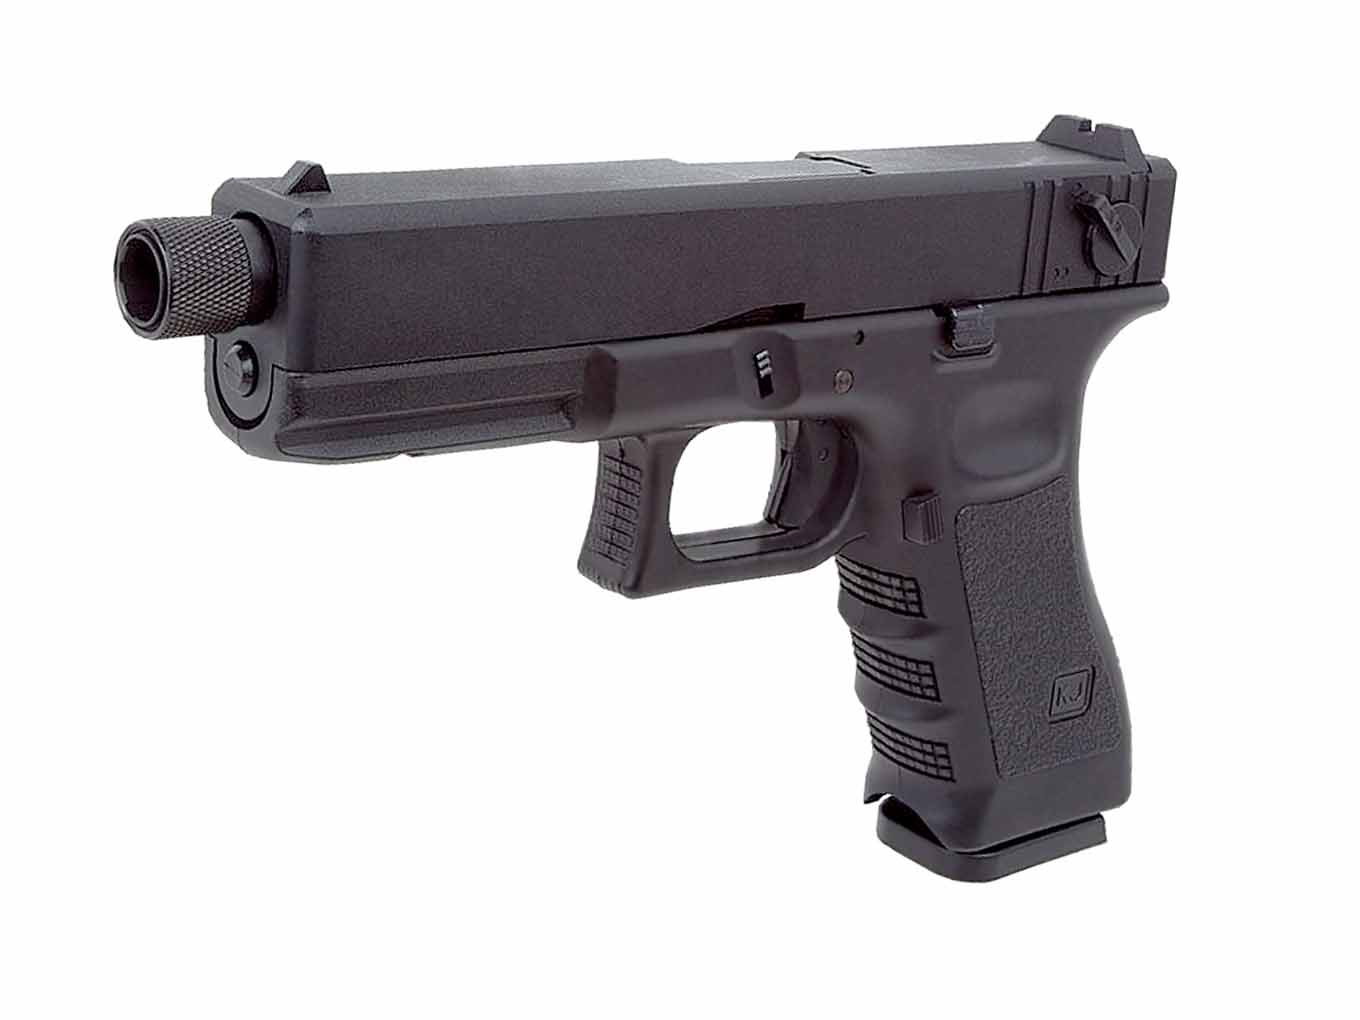 KJW KP-18 Metal Slide Tactical CO2 GBB Pistol Black